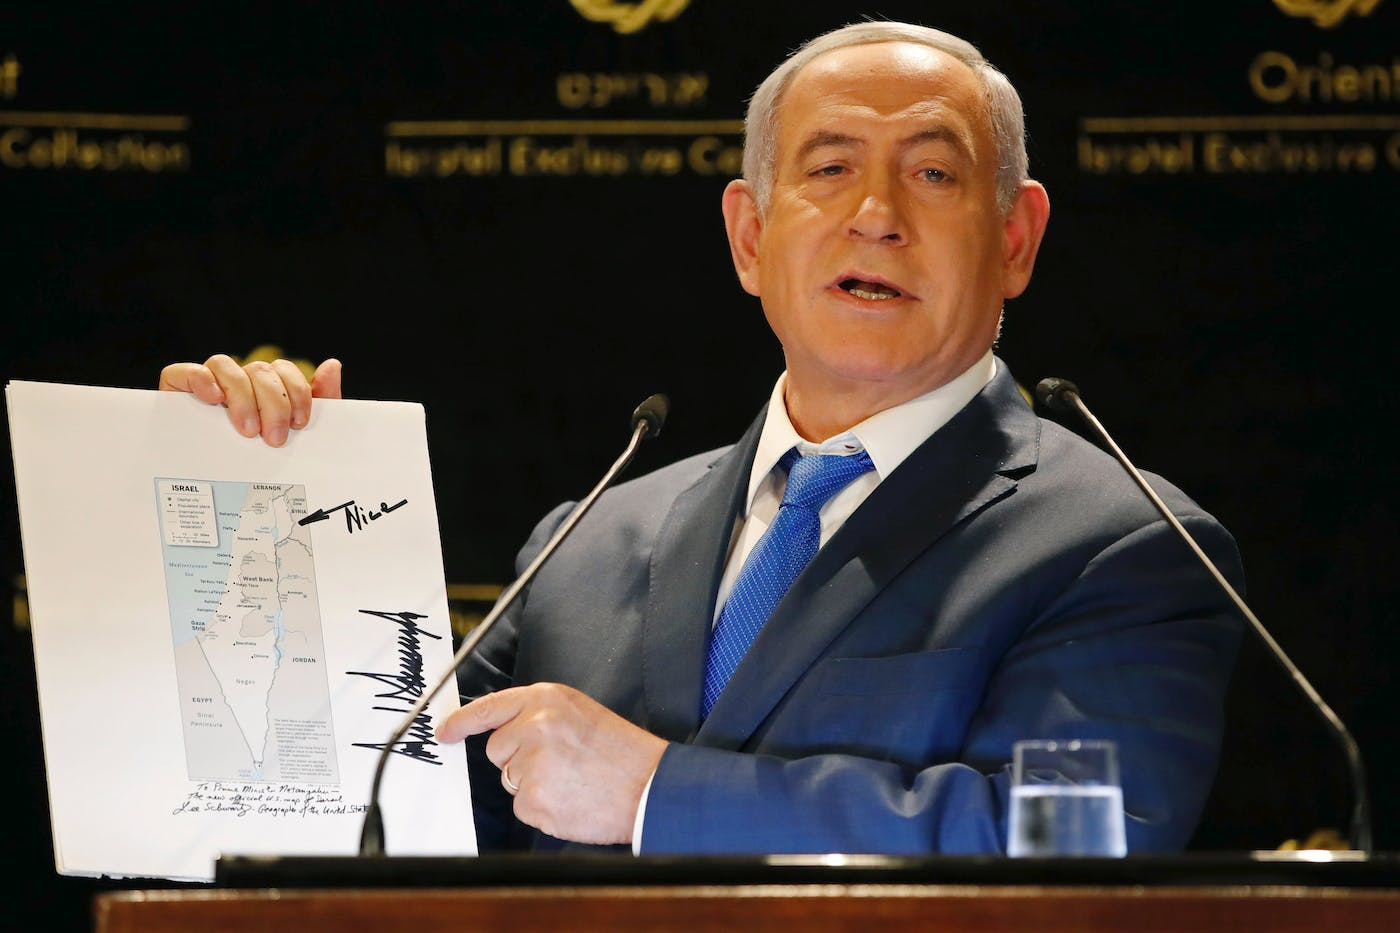 Israeli Prime Minister Benjamin Netanyahu displays a map of Israel indicating the Golan Heights are inside the state's borders, signed by US president Donald Trump and handed over to him by the president's son-in-law and adviser Jared Kushner during the same day, as he speaks in a hotel of Jerusalem on May 30, 2019. - Israeli Prime Minister Benjamin Netanyahu was confronted with one of the biggest defeats of his political career on May 30 after failing to form a coalition and opting instead to hold an unprecedented second election. (Photo by Thomas COEX / AFP)        (Photo credit should read THOMAS COEX/AFP/Getty Images)